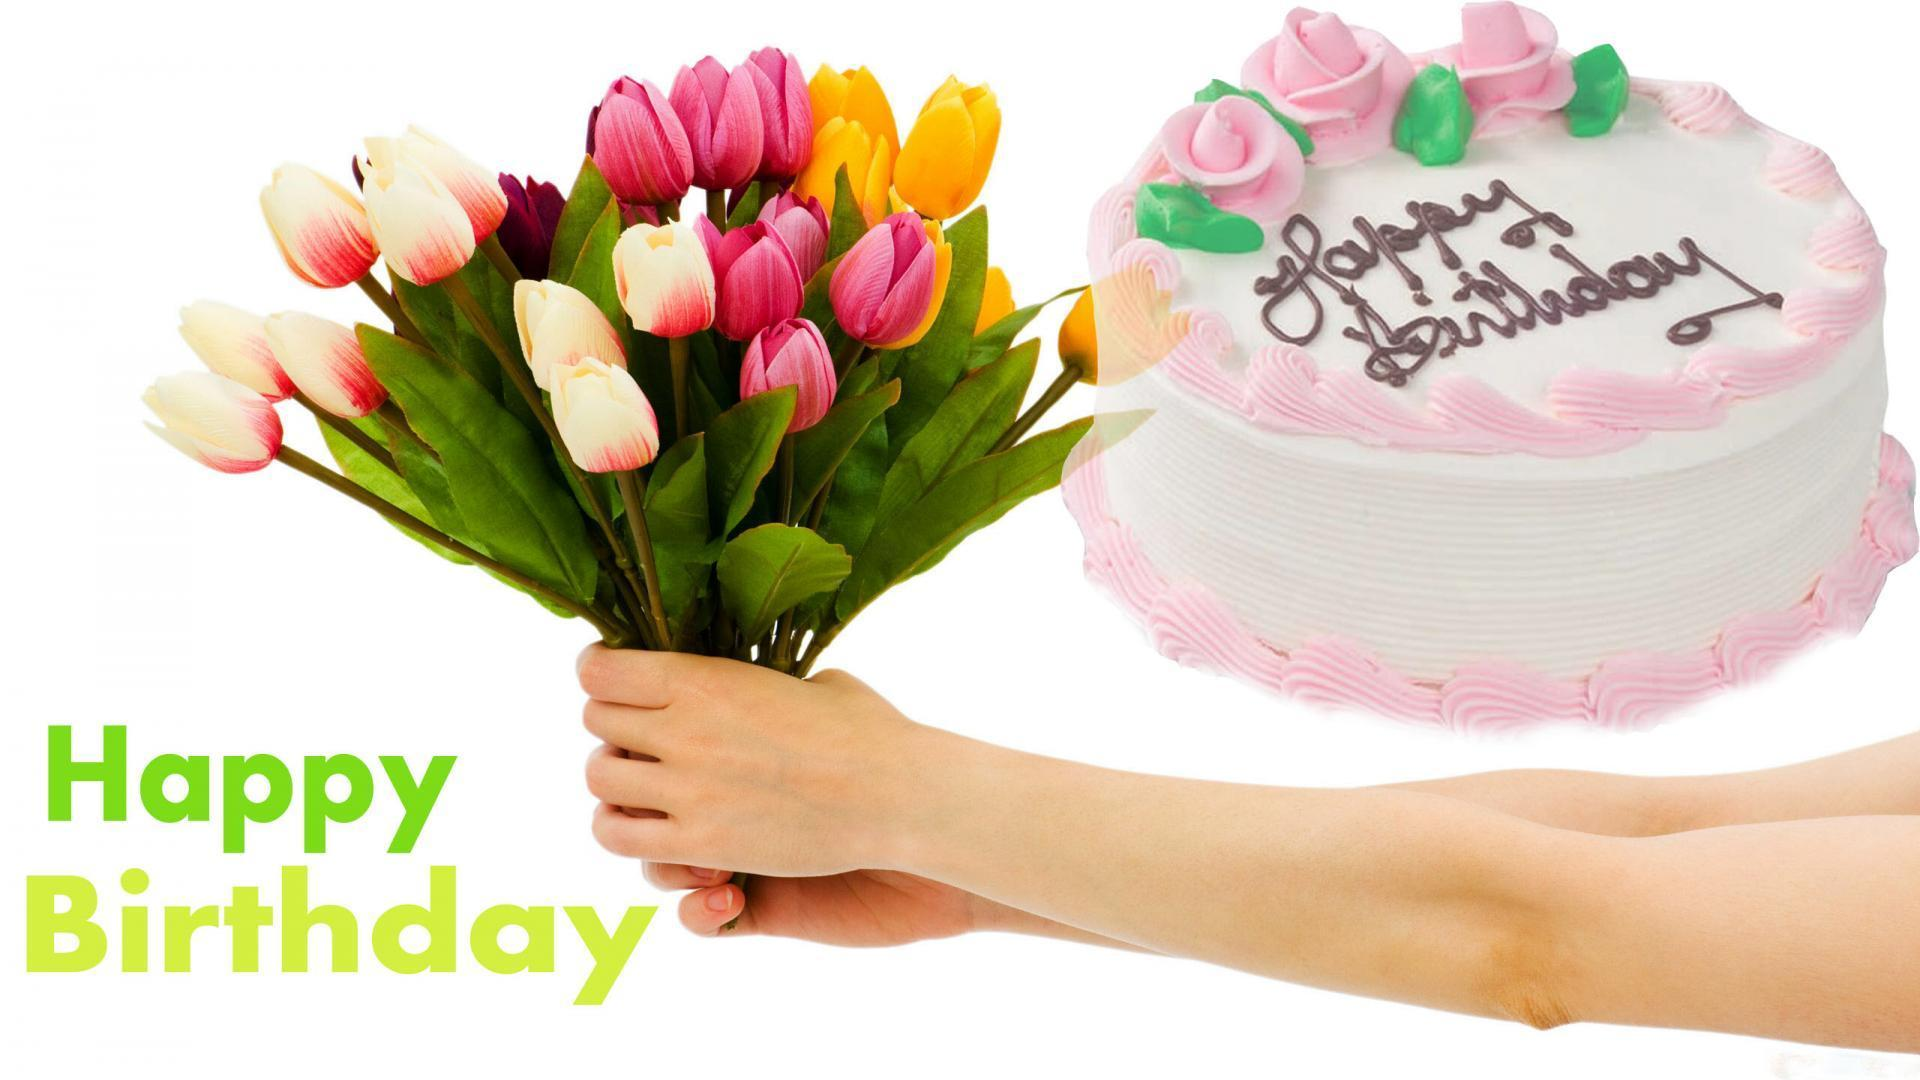 wallpapers happy birthday cake  wallpaper cave, Beautiful flower